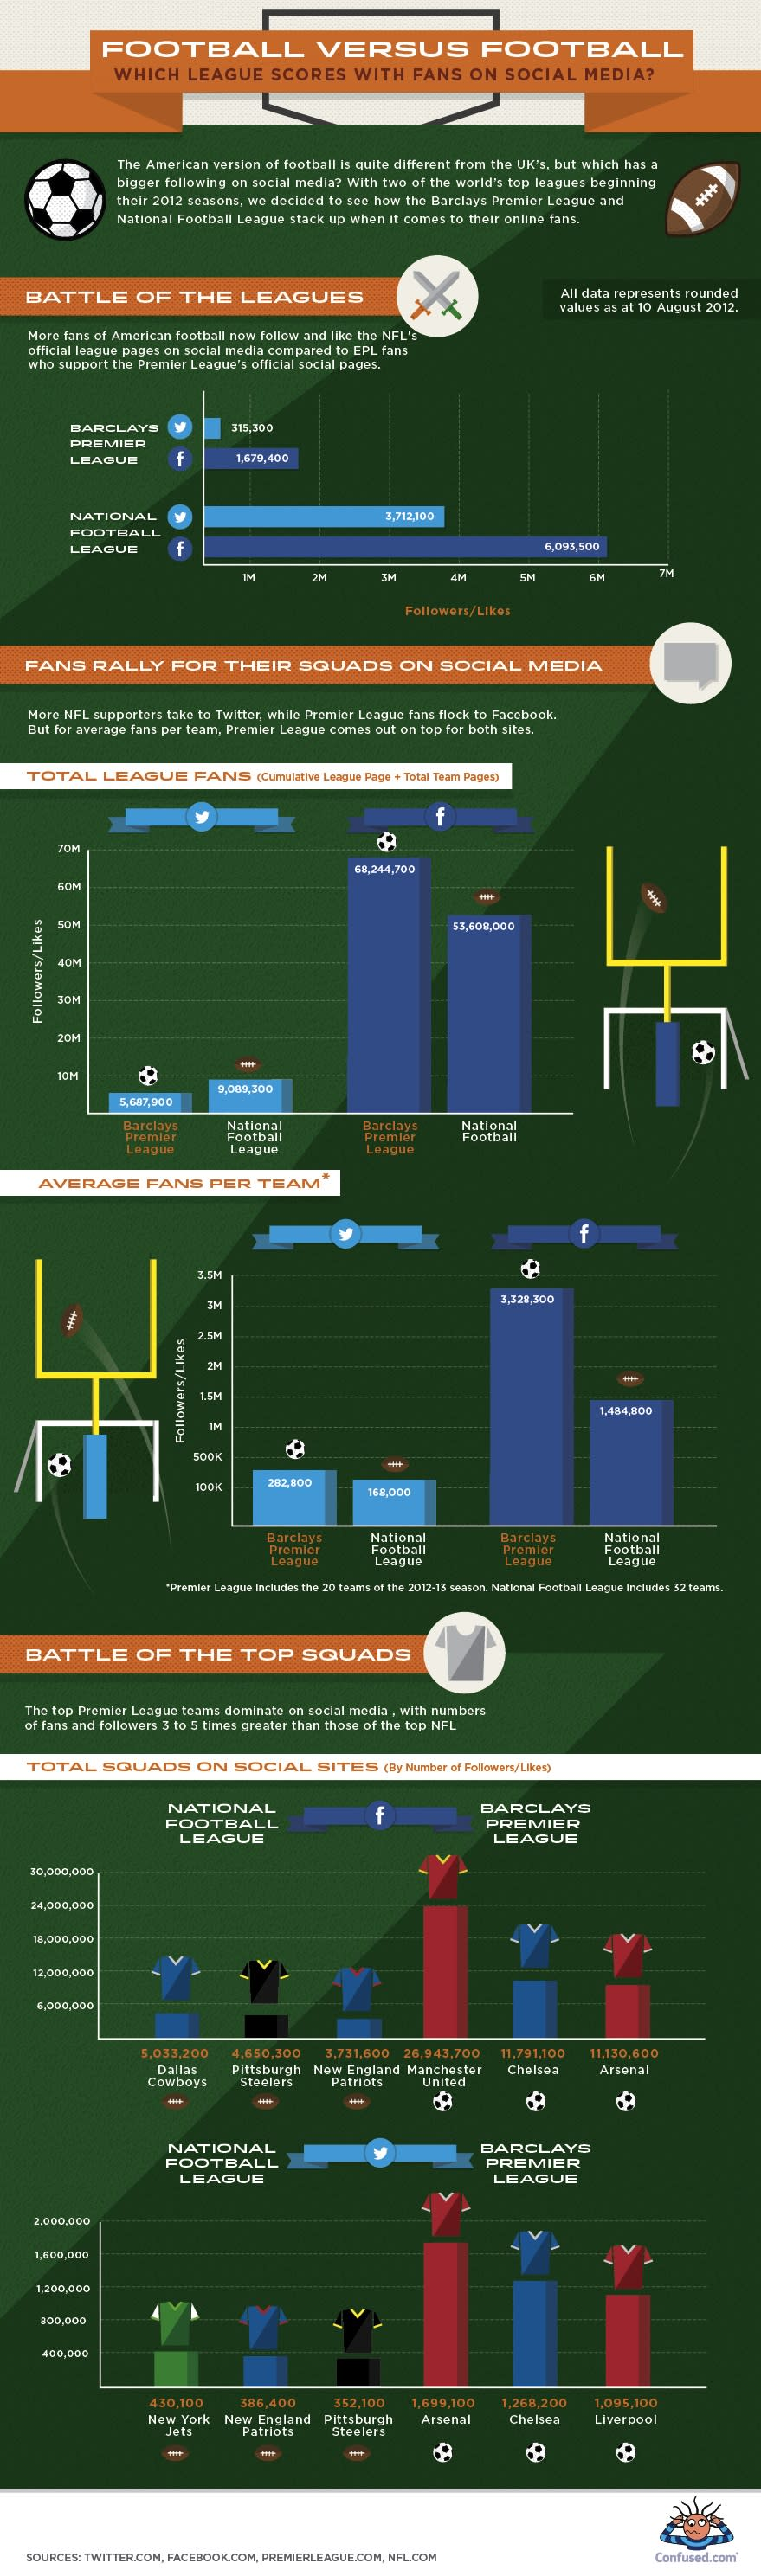 Football v. Football: Which Sport Wins Social? [INFOGRAPHIC]